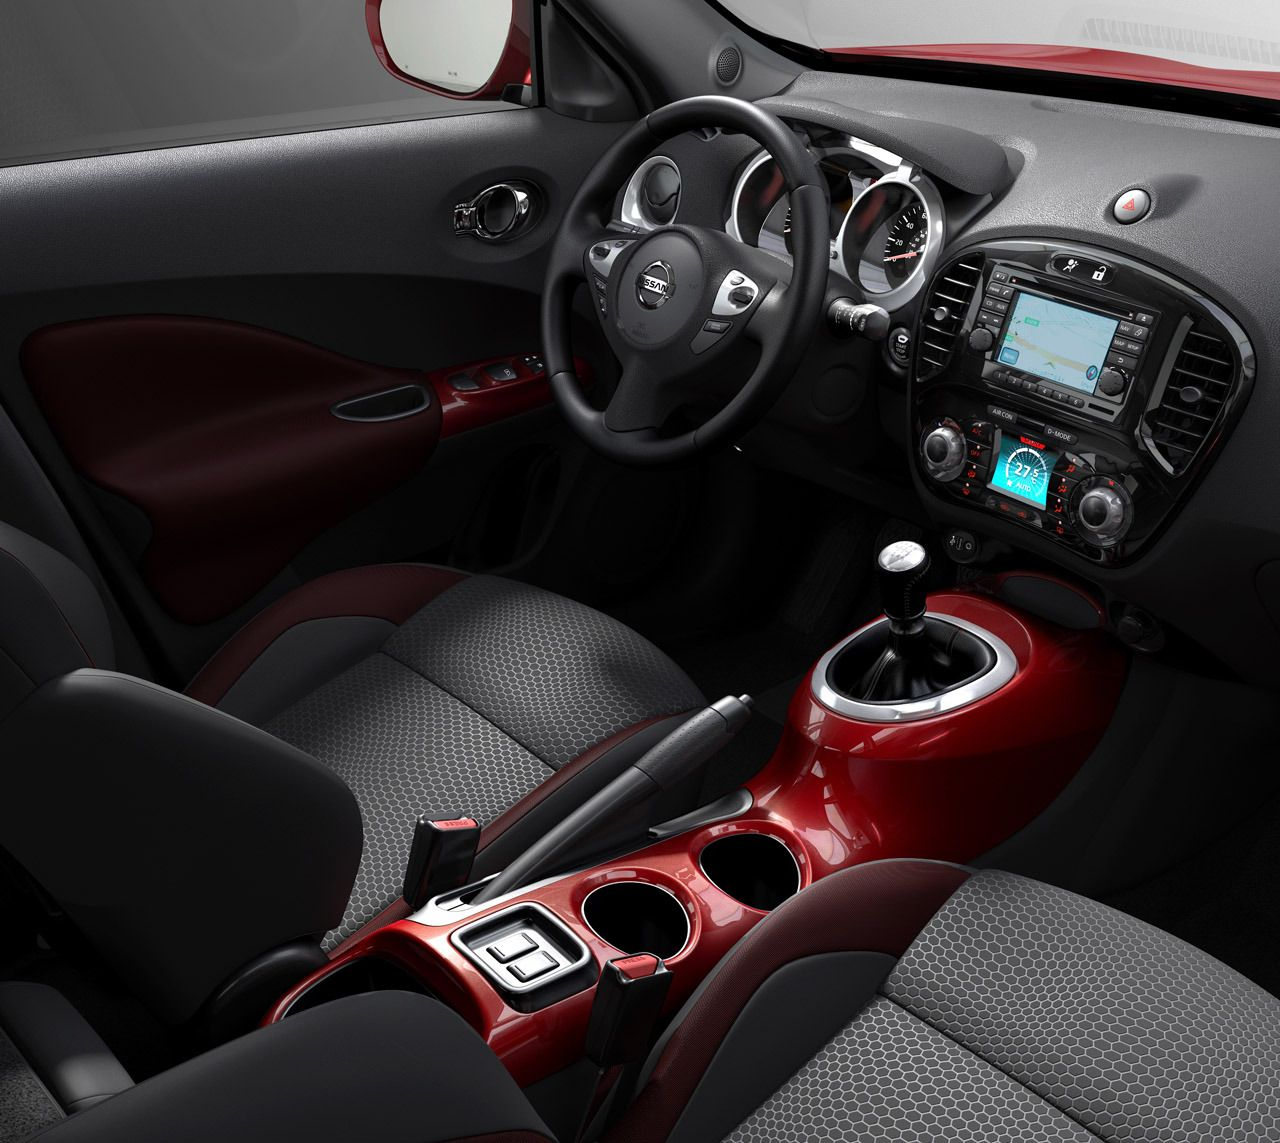 Nissan Juke Interior Leather Seats W Red Trim Toys Pinterest